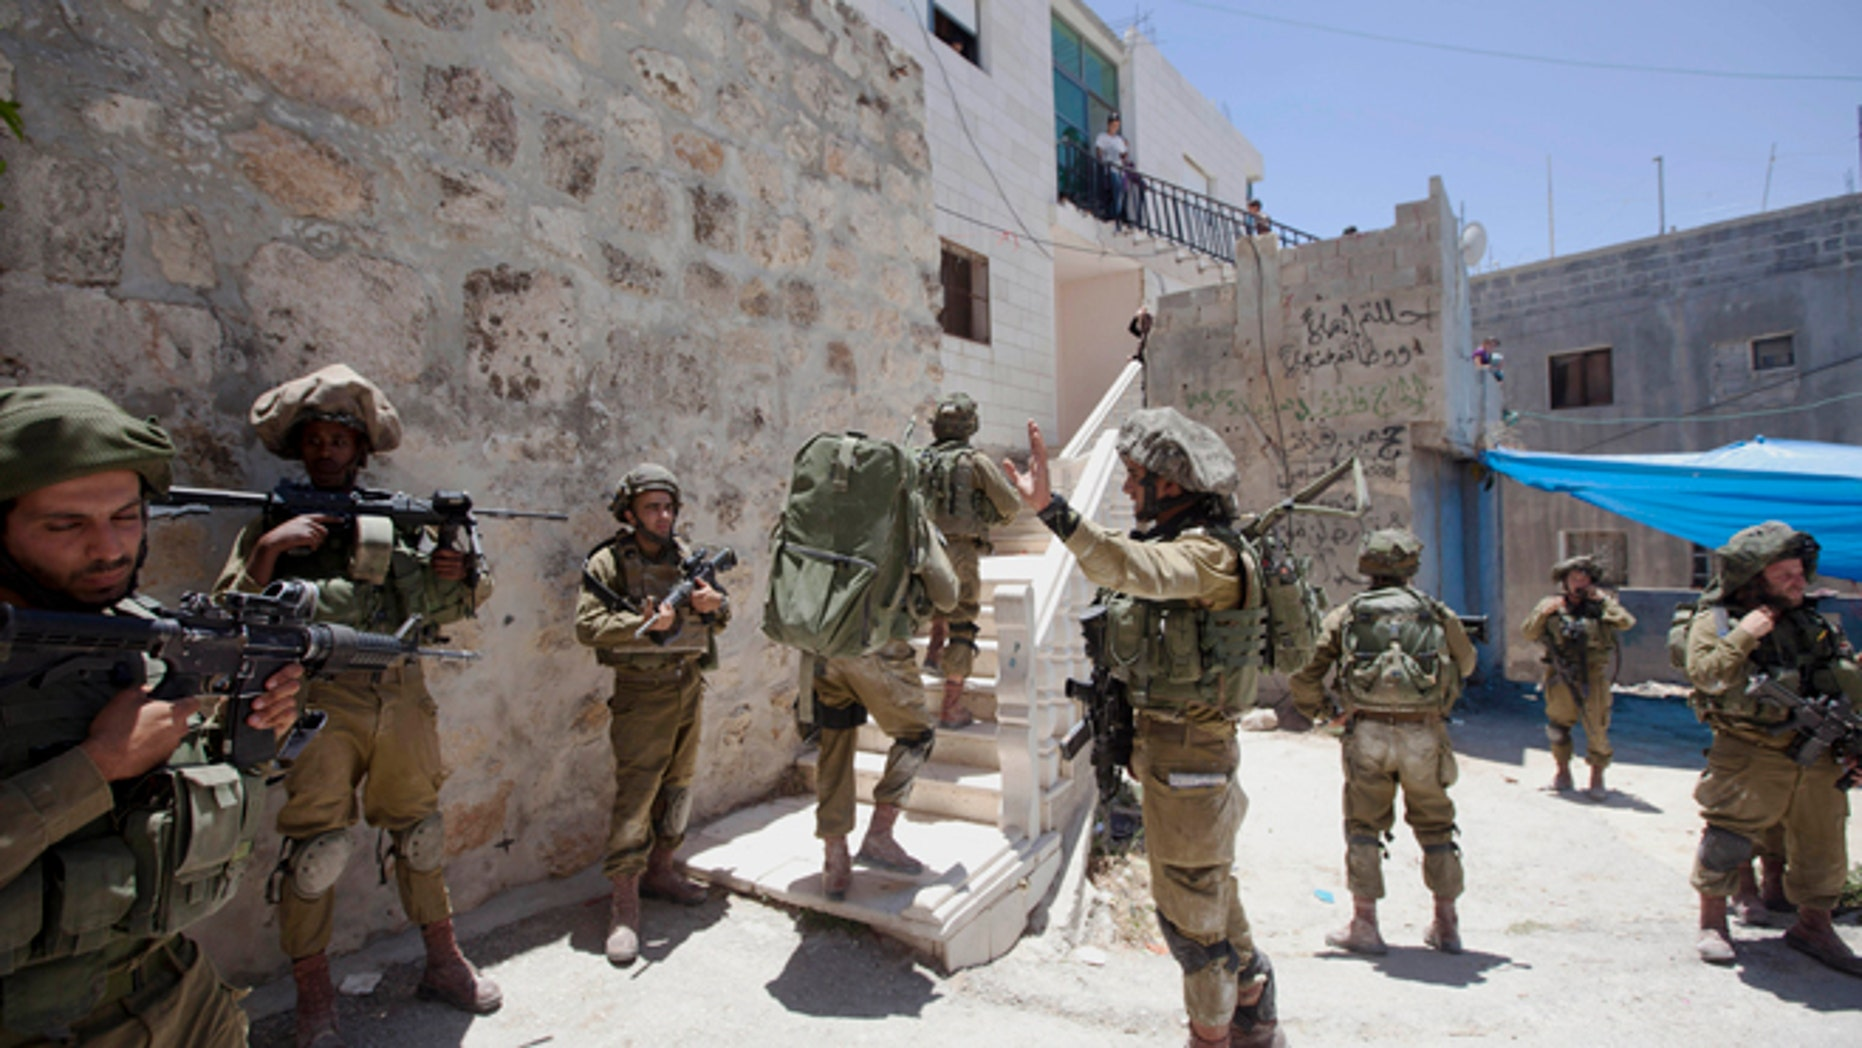 June 15, 2014: Israeli soldiers patrol during a military operation to search for three missing teenagers outside the West Bank city of Hebron. Israeli troops on Sunday arrested some 80 Palestinians, including dozens of members of Hamas, in an overnight raid in the West Bank as Prime Minister Benjamin Netanyahu accused the Islamic militant group of kidnapping three teenagers who went missing nearly three days ago. (AP/Majdi Mohammed)